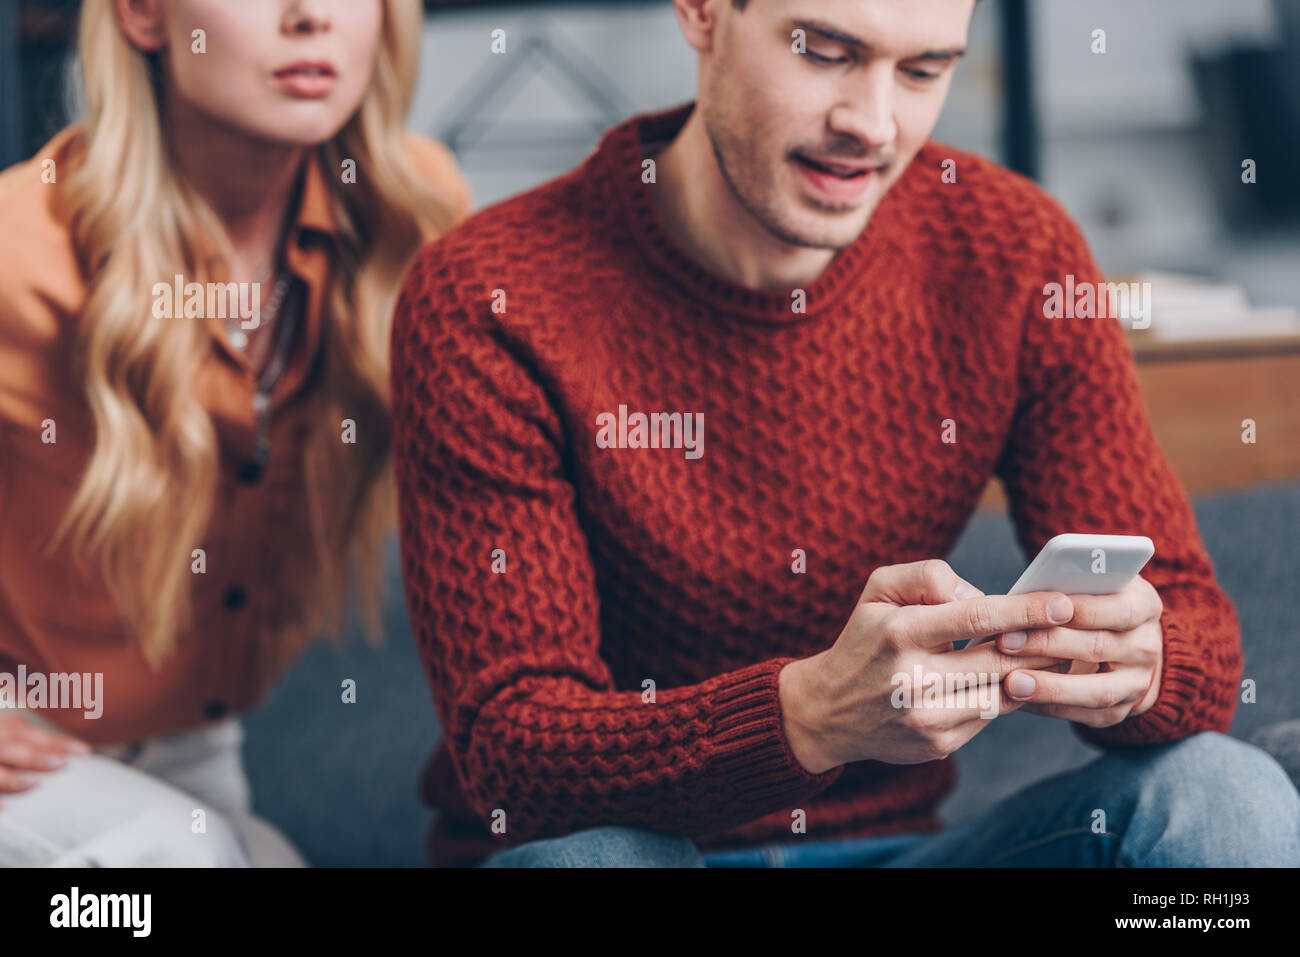 cropped shot of man using smartphone and wife sitting behind, distrust concept - Stock Image